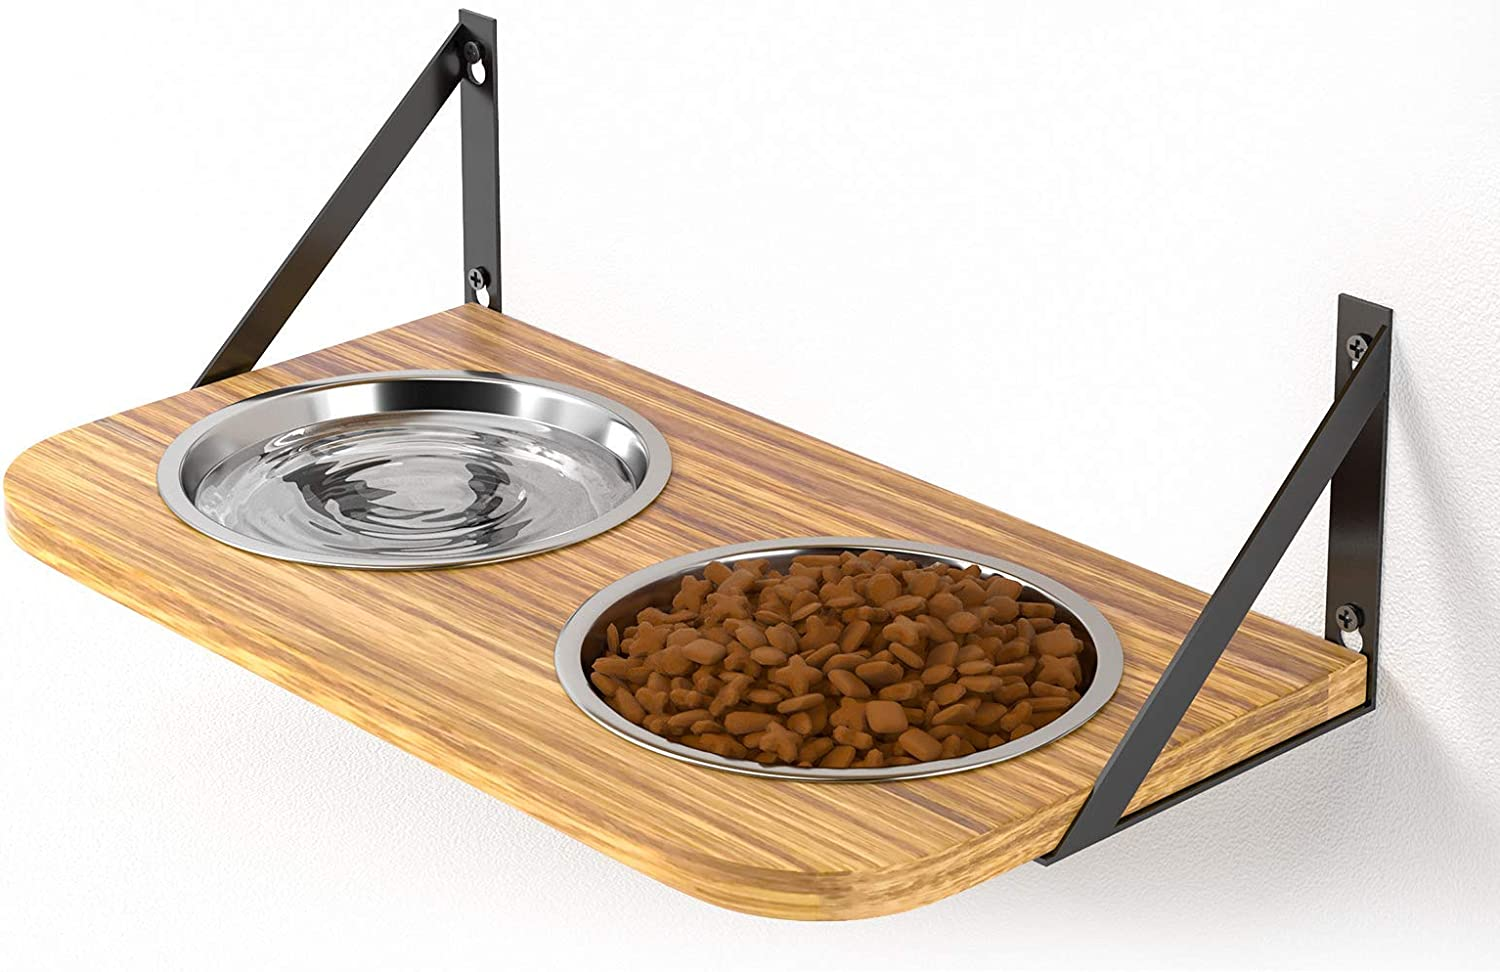 BUYBAR Adjustable Raised Dog Bowls for Large Dogs Food and Water Height Wall Mounted Floating with Stand Shelf 2 Stainless Steel Elevated Pet Comfort Cat Feeding Bowl (Single, Brown)